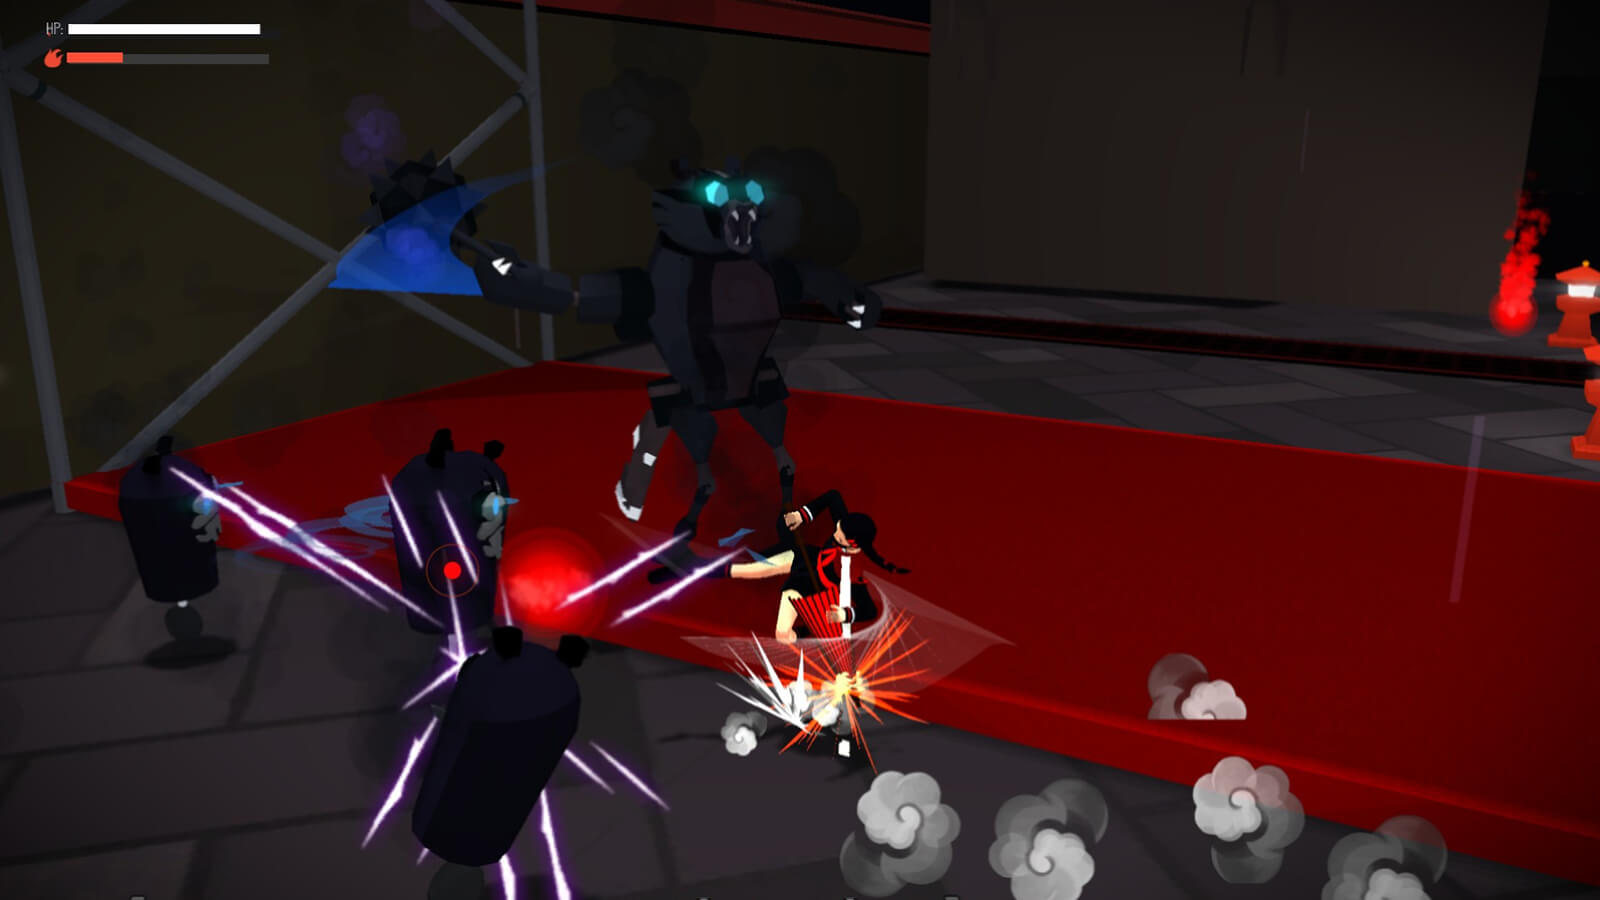 A girl in a red-and-black uniform kicks at blue-eyed robotic beasts of varying sizes in a dark hallway.